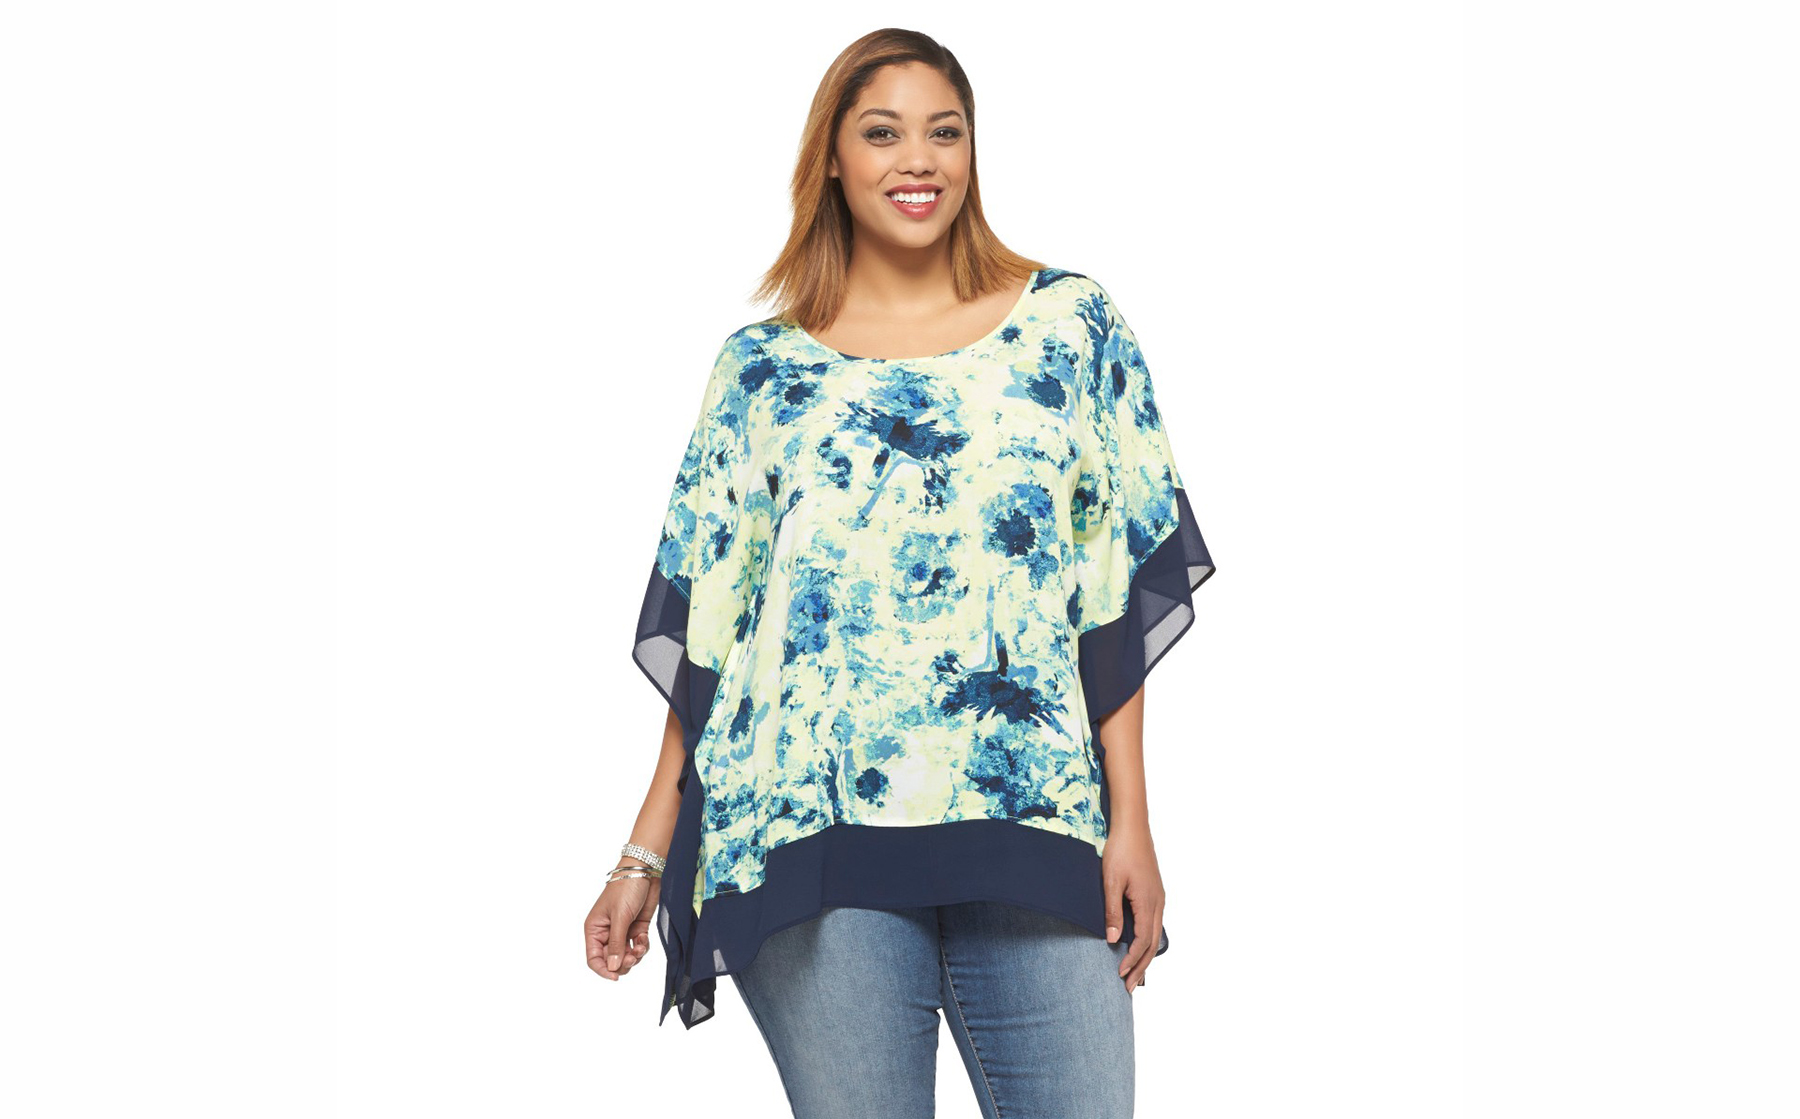 81f0d6c4e14b6 9 Clothing Brands That Are Revolutionizing the Plus-Size Market ...